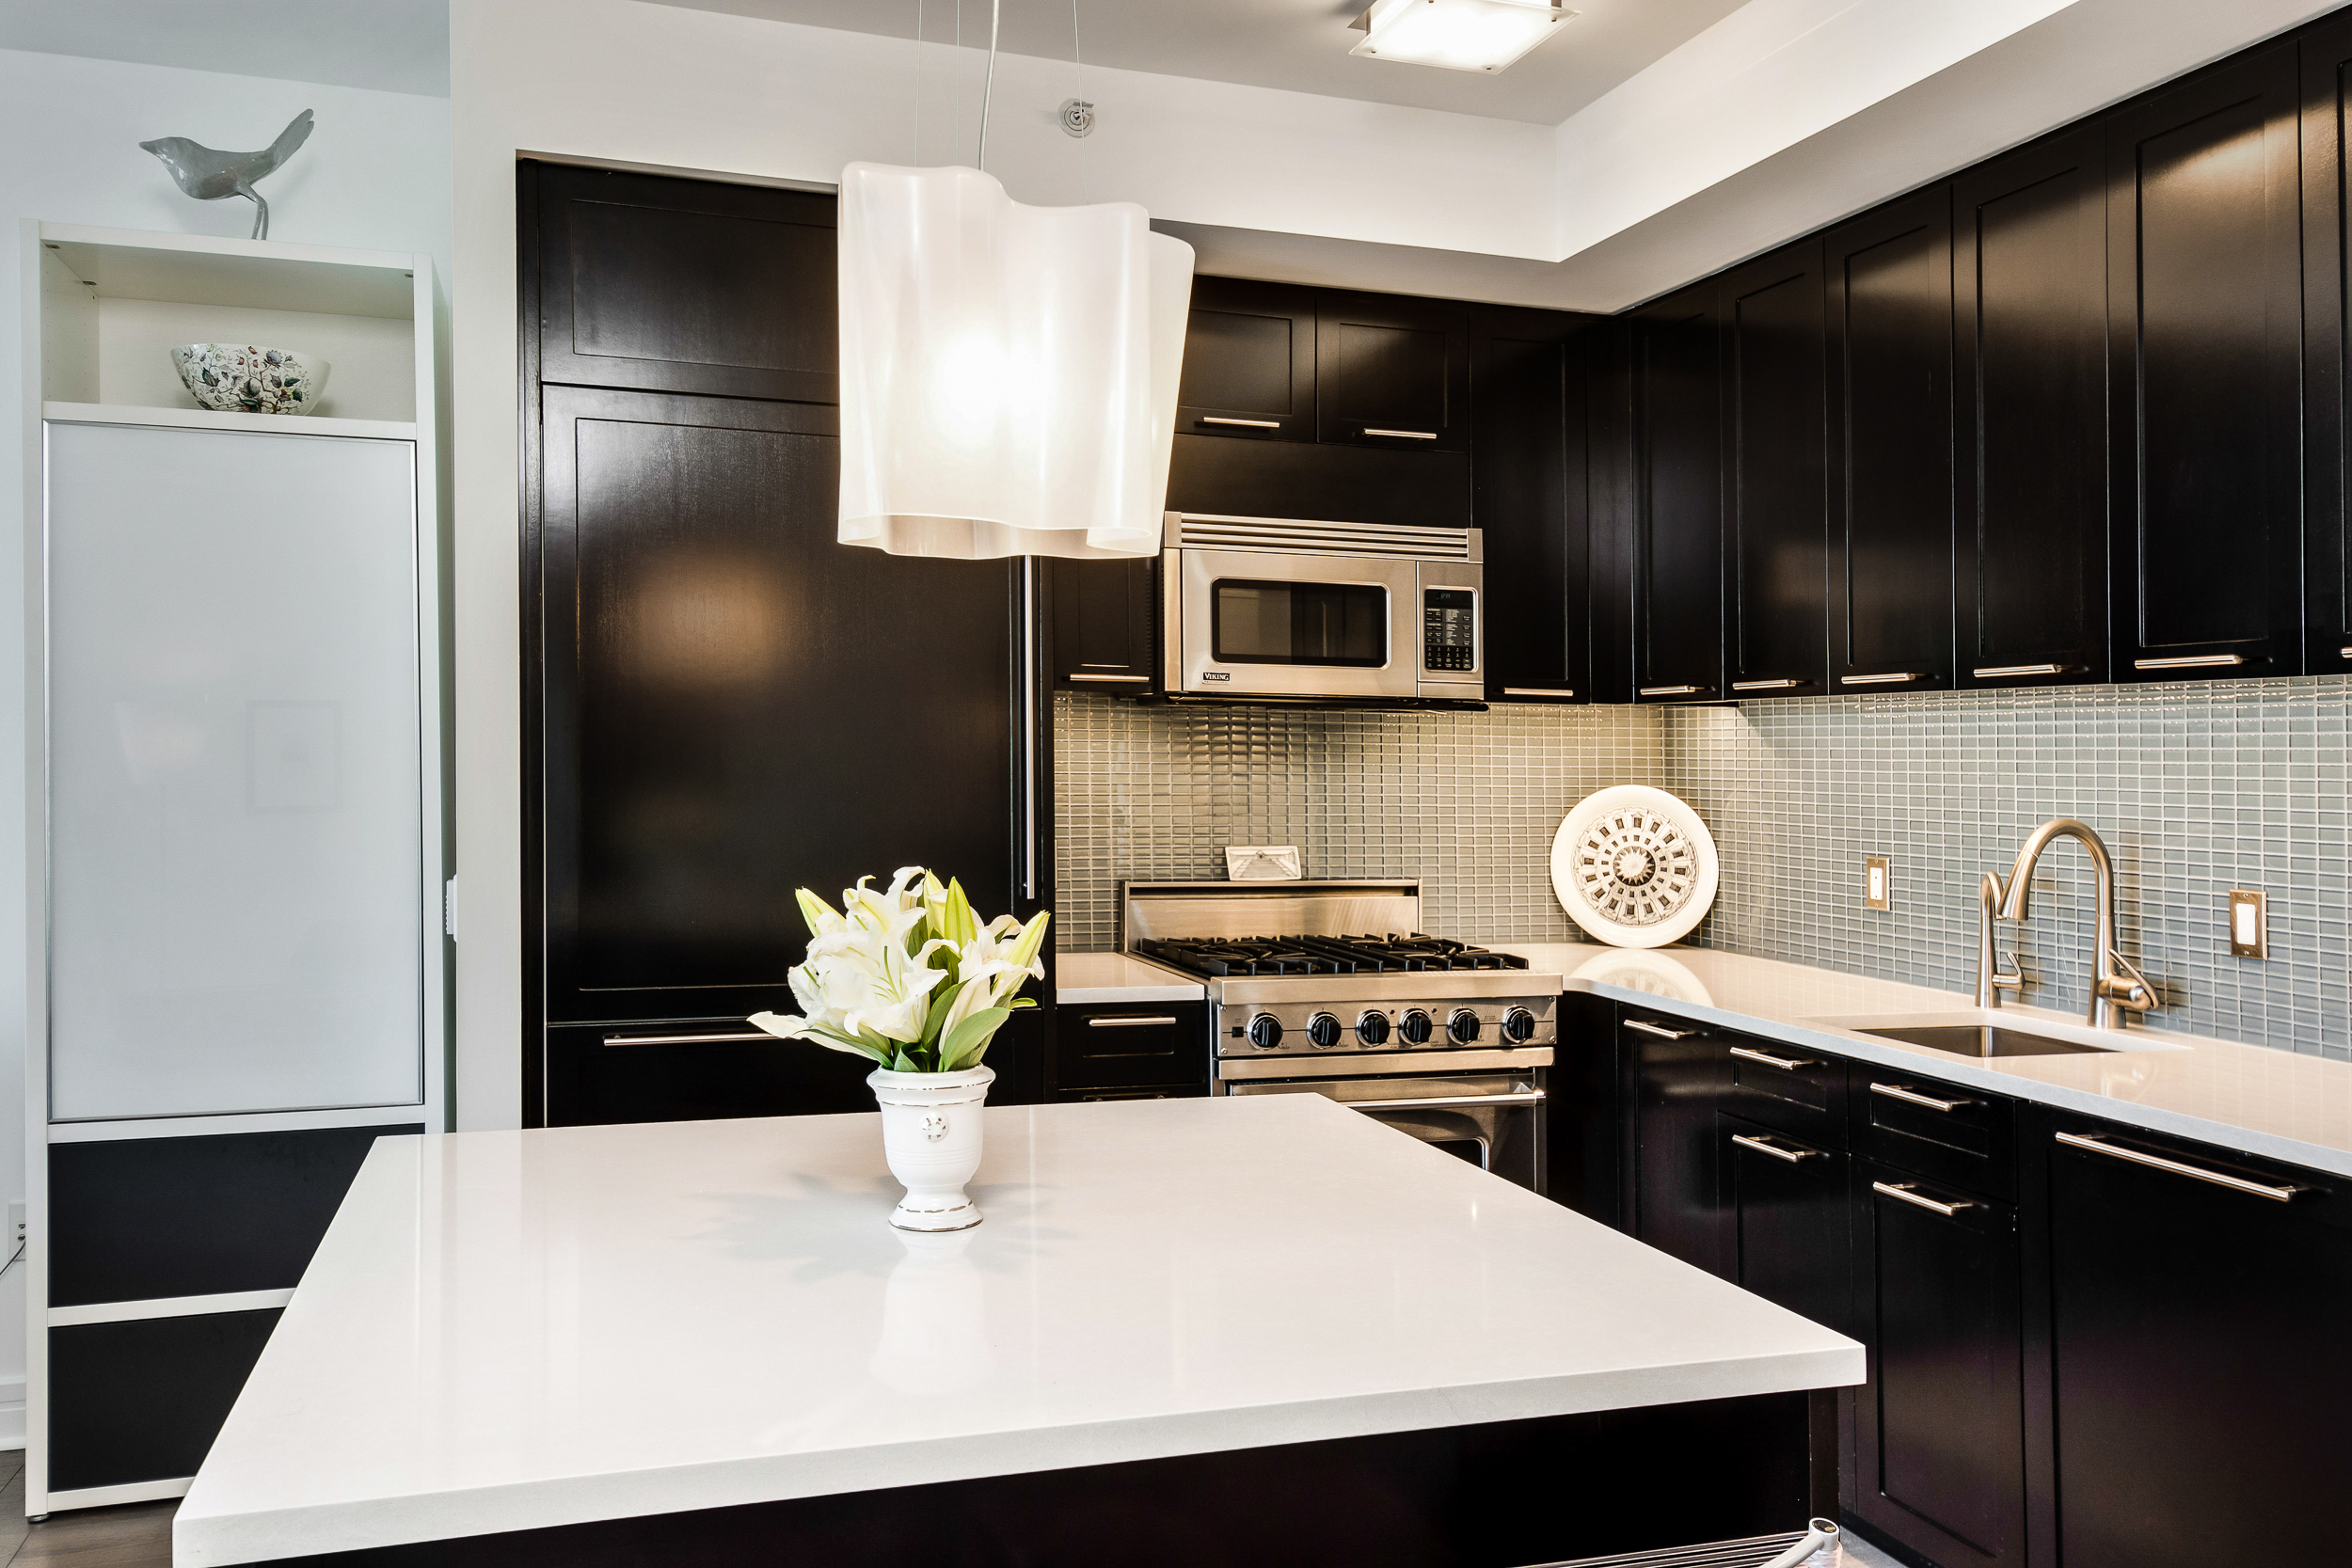 ritz carlton residence 20d kitchen 2.jpg